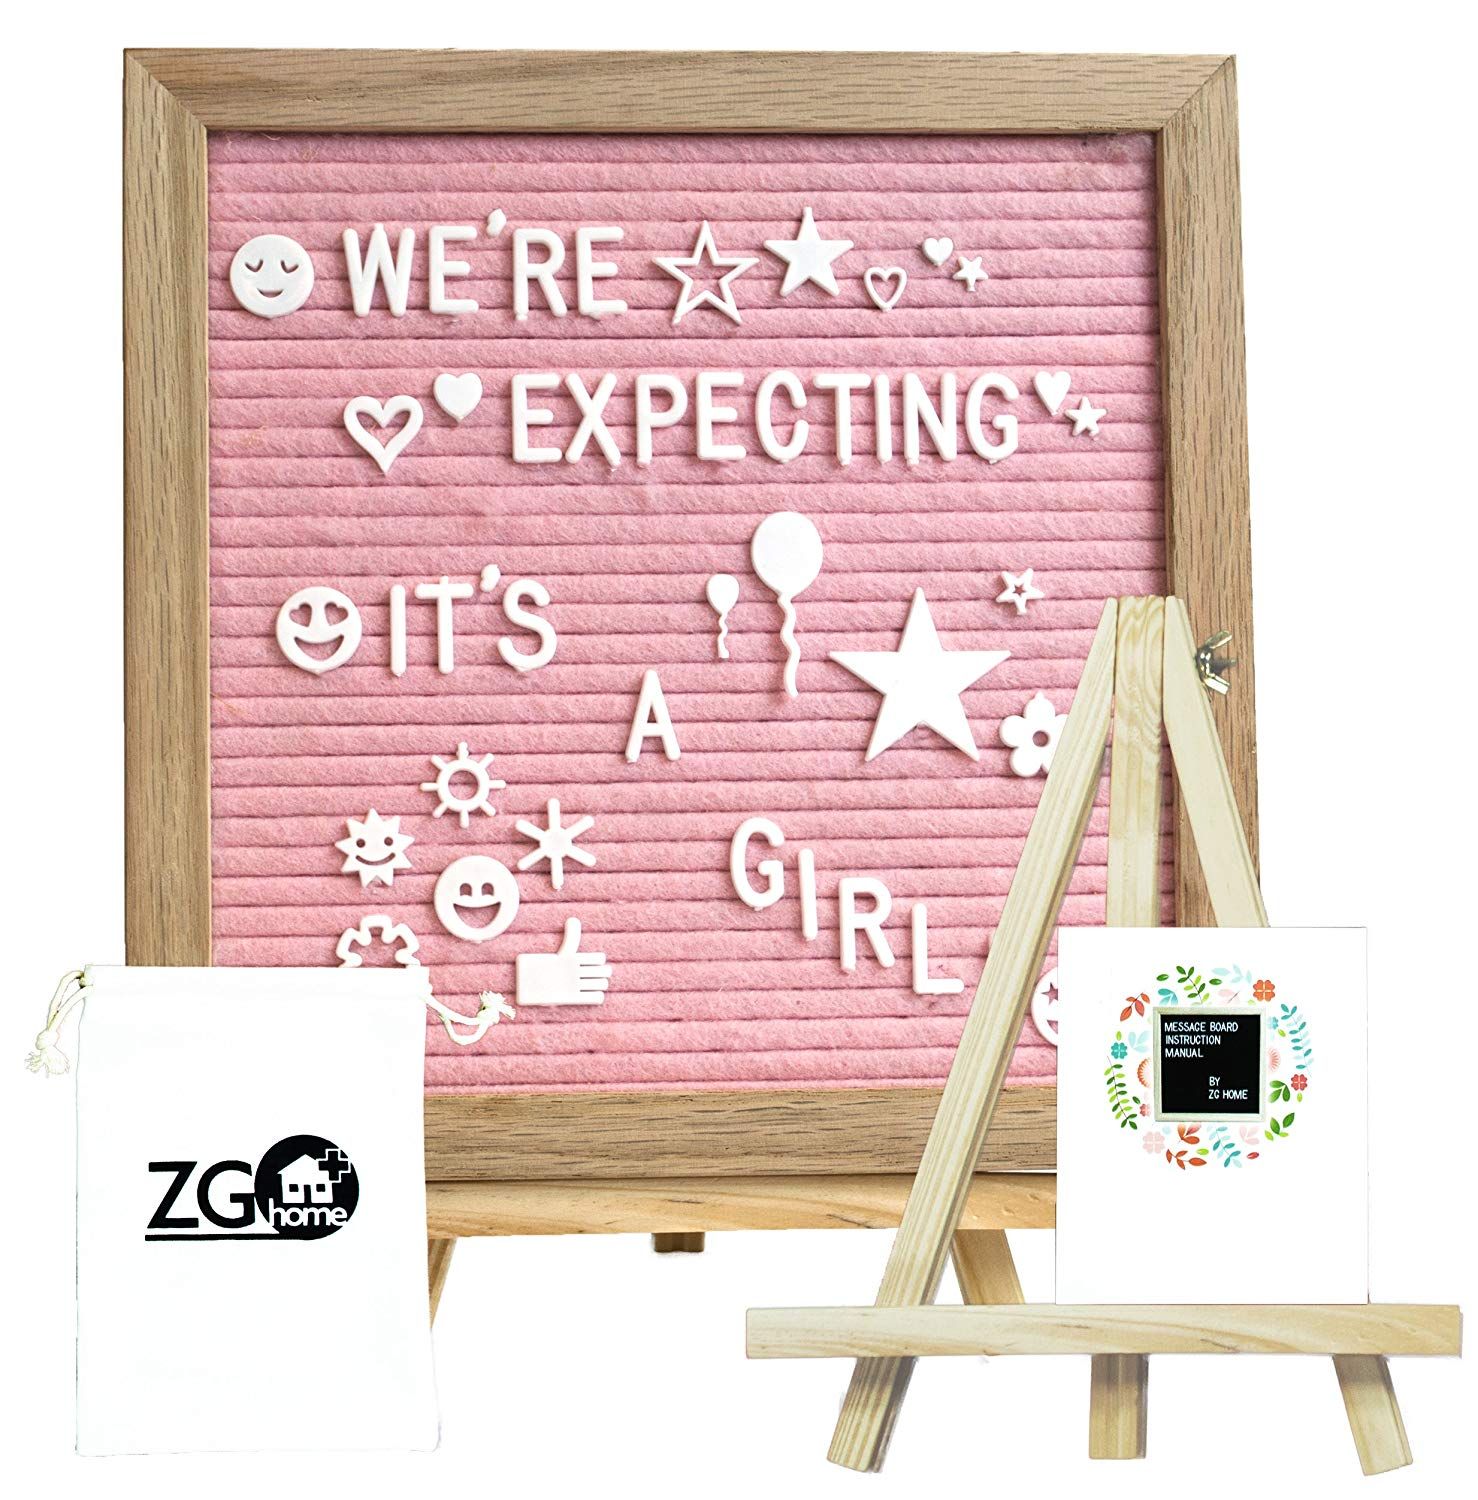 Pink Felt Letter Board with 678 Letters, Numbers, Emojis and Symbols,10X10 Inches Changeable Oak Frame Message Board with Mount Hanger, Stand and Canvas Bags by ZG-Home( ZG1010P)